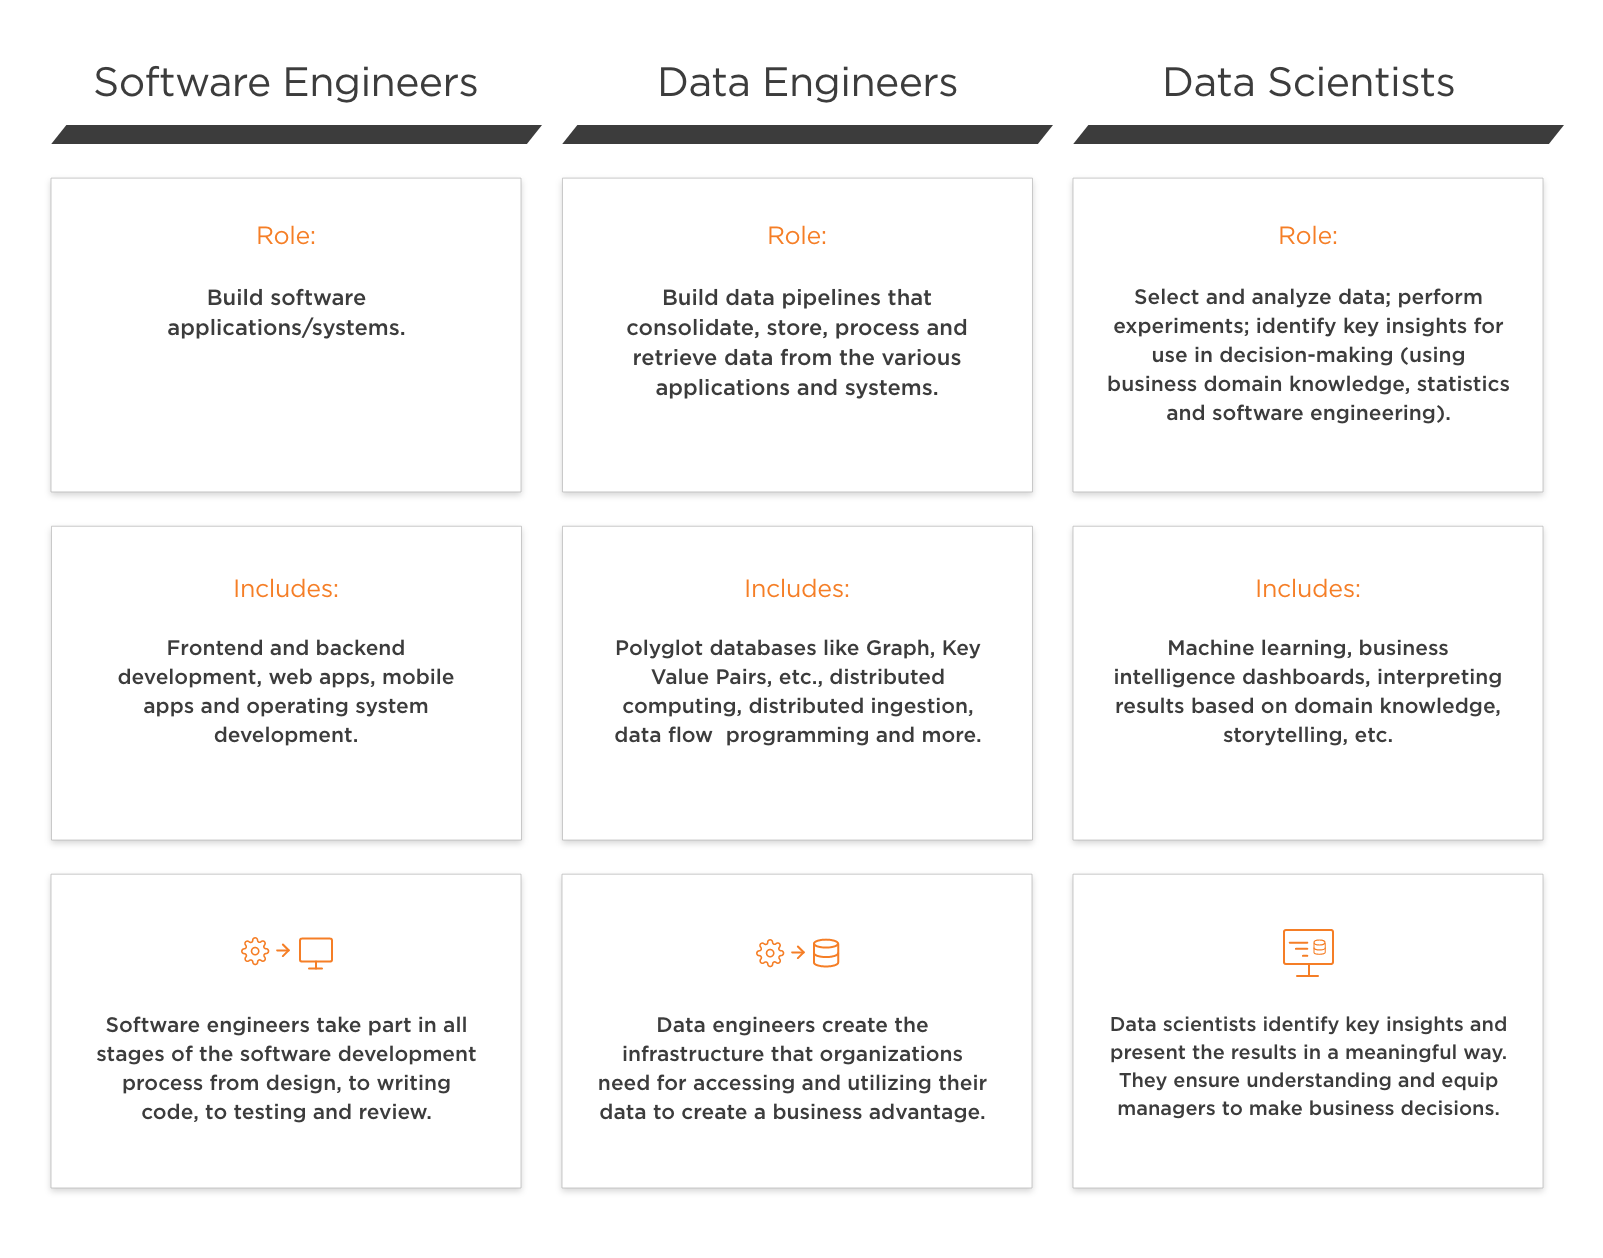 This table explains the Big Data terminology related to roles. It lists the distinctions between software engineers, data engineers and data scientists.